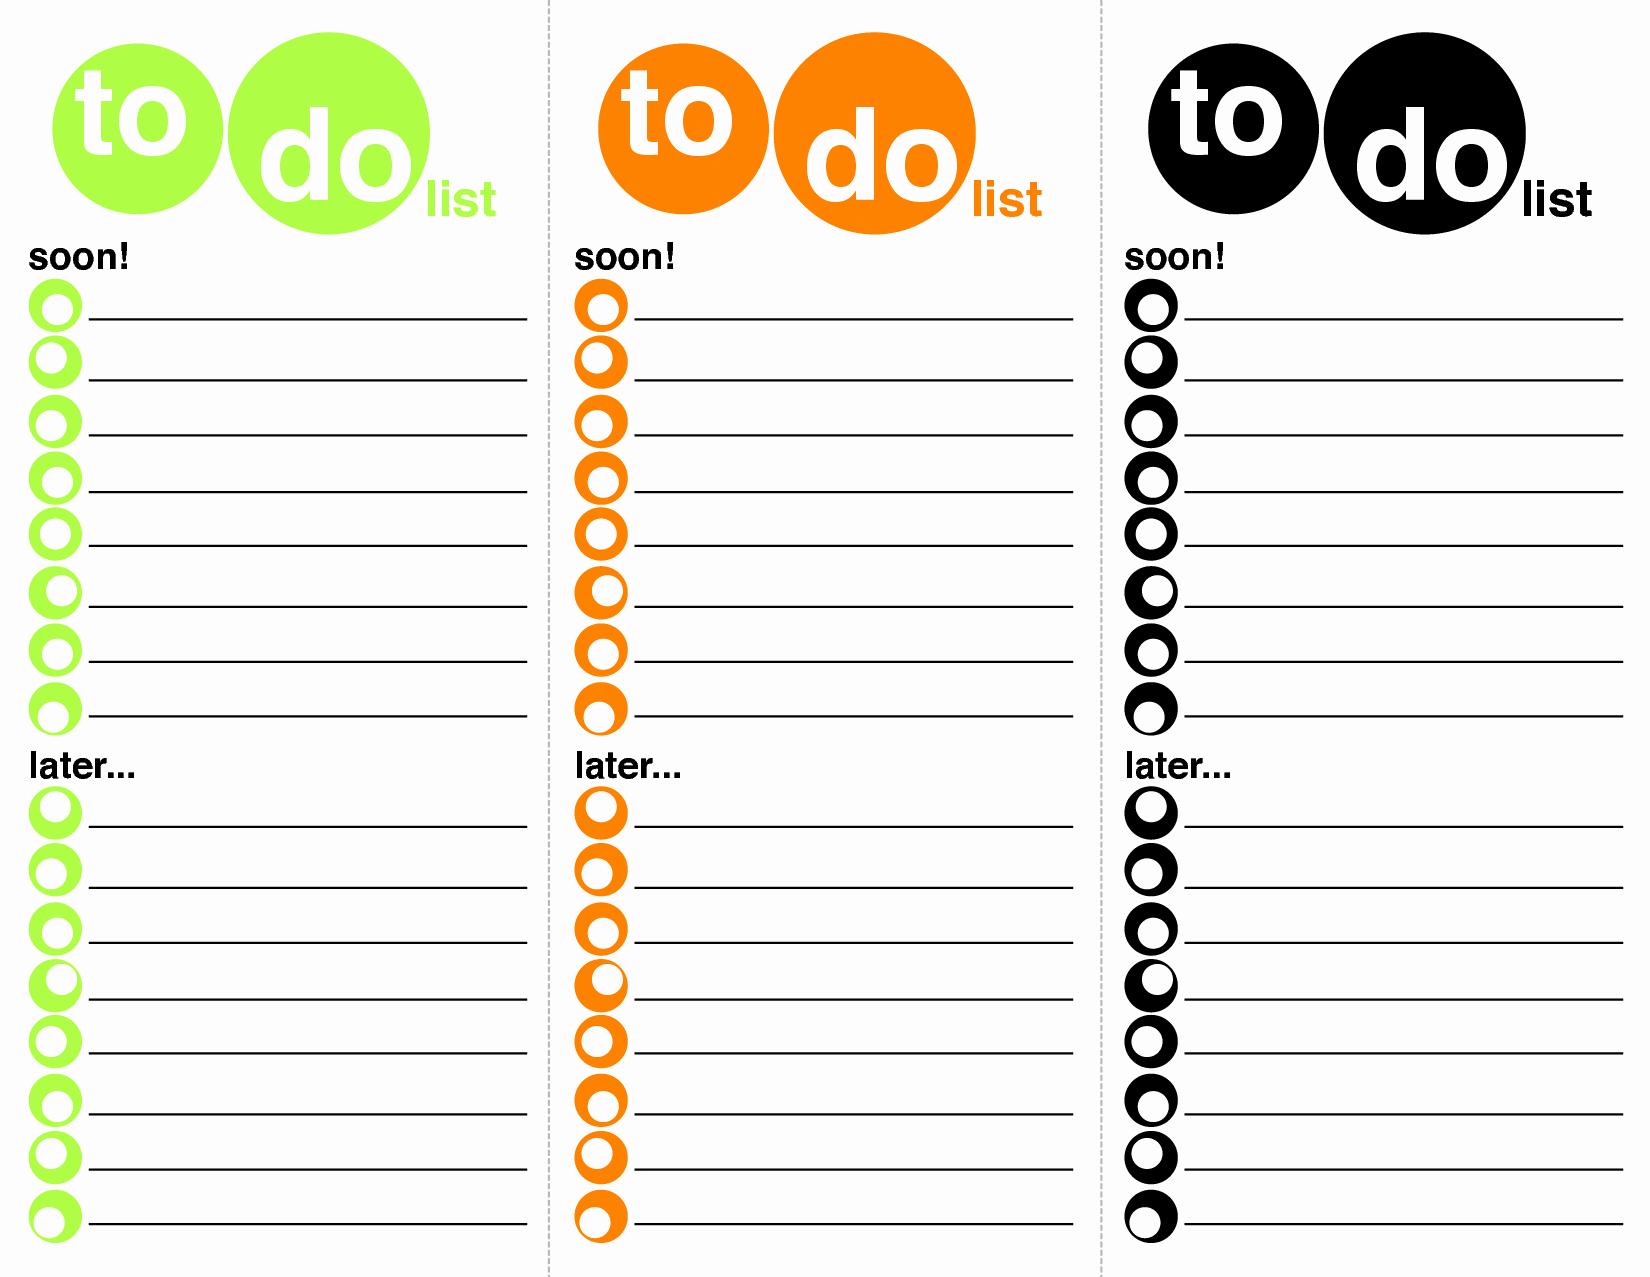 Things to Do List Template Lovely 40 Printable to Do List Templates